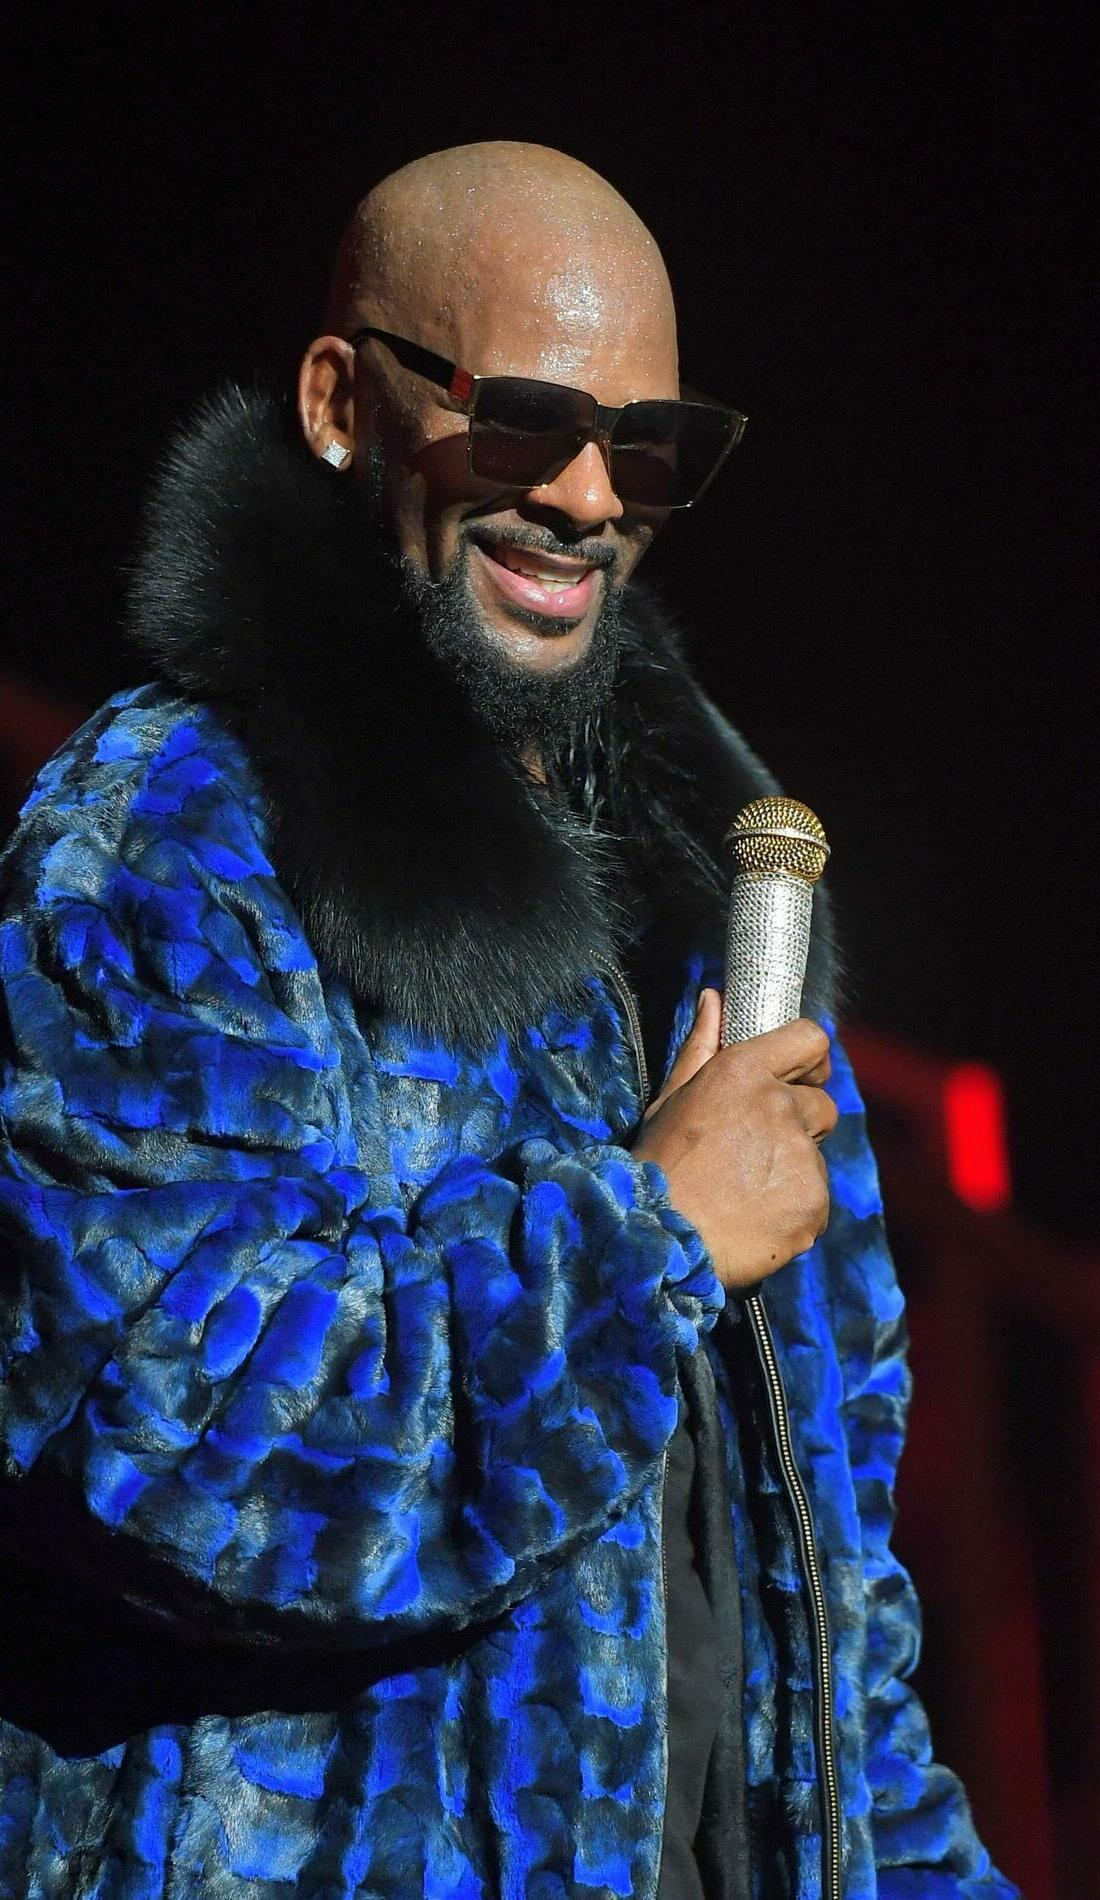 A R. Kelly live event